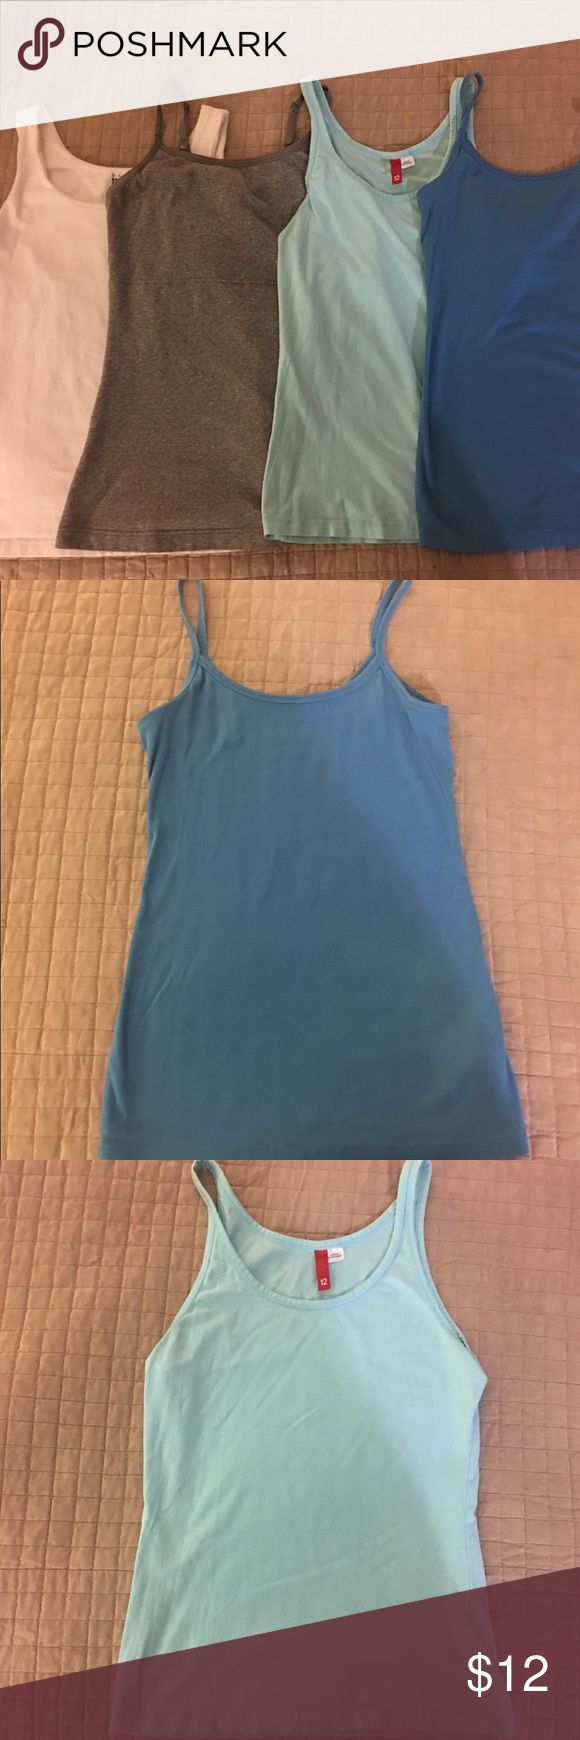 4 Piece Lot Womens Tanks Hey ladies! Here's a special deal just for you!  White tank (small) with built in shelf bra.  Extra stretchy and nice thicker material. Gray tank (large) double layer compression to hide and smooth any lumps or bumps.  Light turquoise (medium) tank. Blue Banana Republic (medium).  All tanks roughly same dimensions when stacked.  Be sure to check back often as I'll be posting a ton of stuff over the next few weeks! Tops Tank Tops